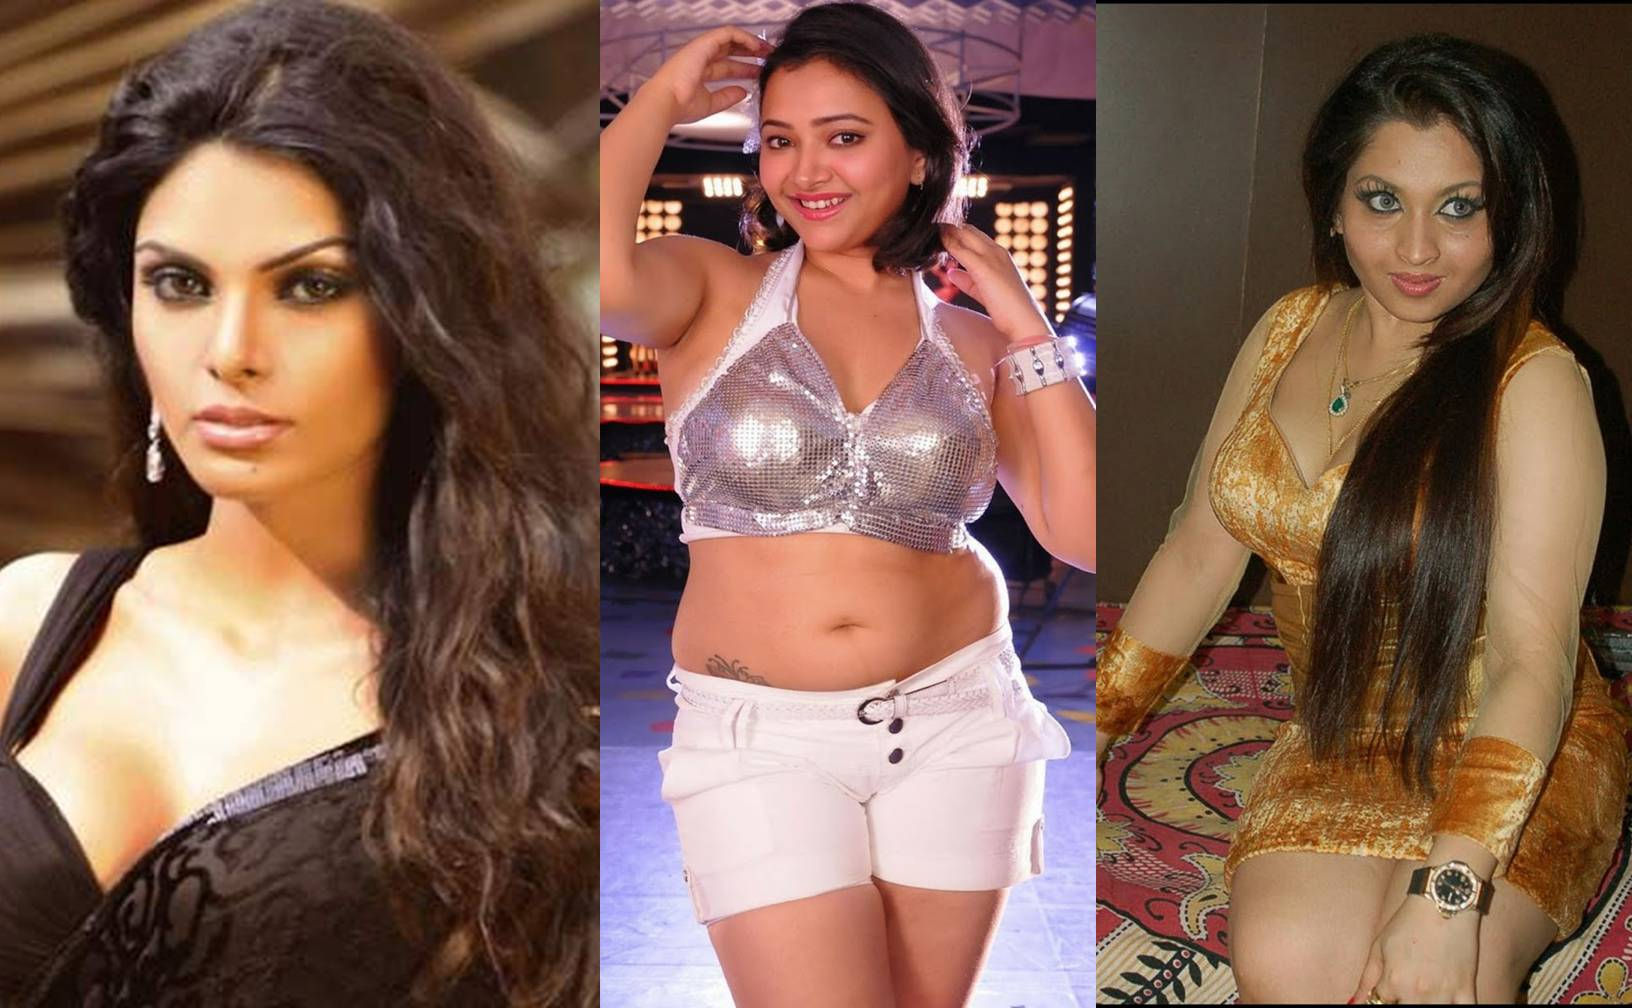 Bollywood Hindi Movies 2018 Actor Name: Indian Actresses Who Were Caught In Shocking Prostitution